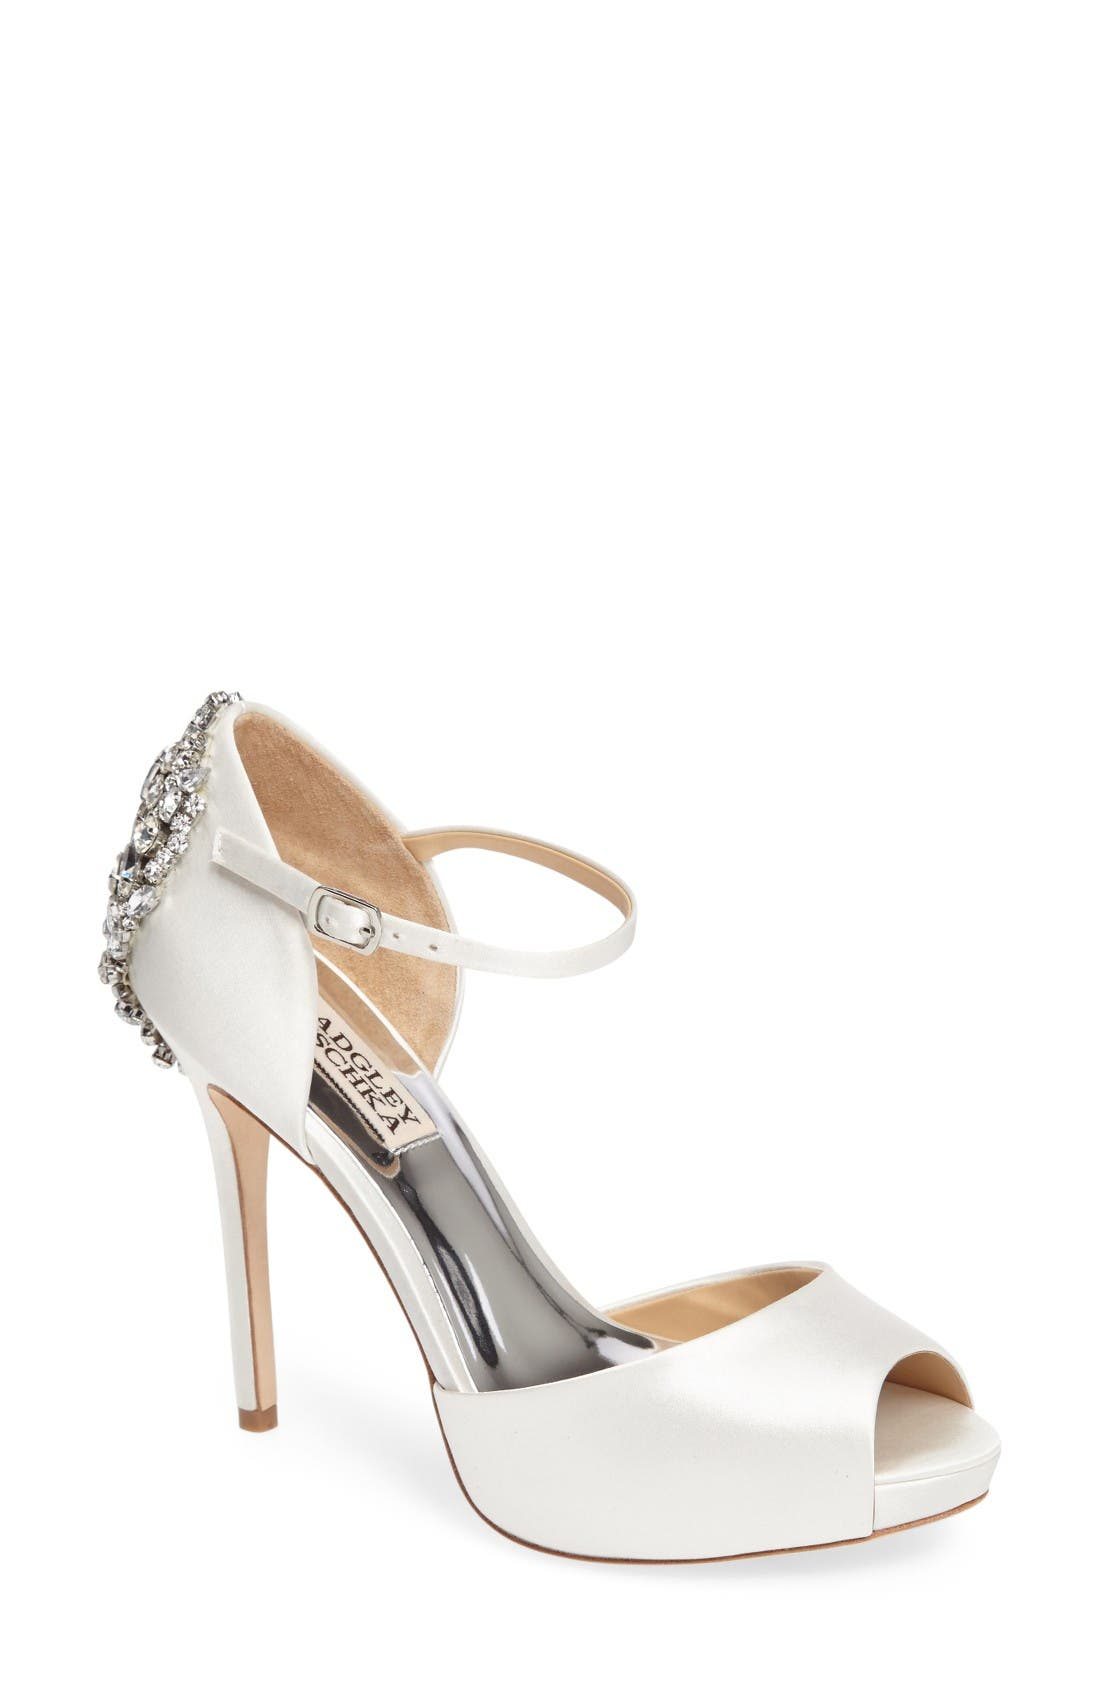 Alternate Image 1 Selected - Badgley Mischka 'Dawn' Crystal Back d'Orsay Pump (Women)